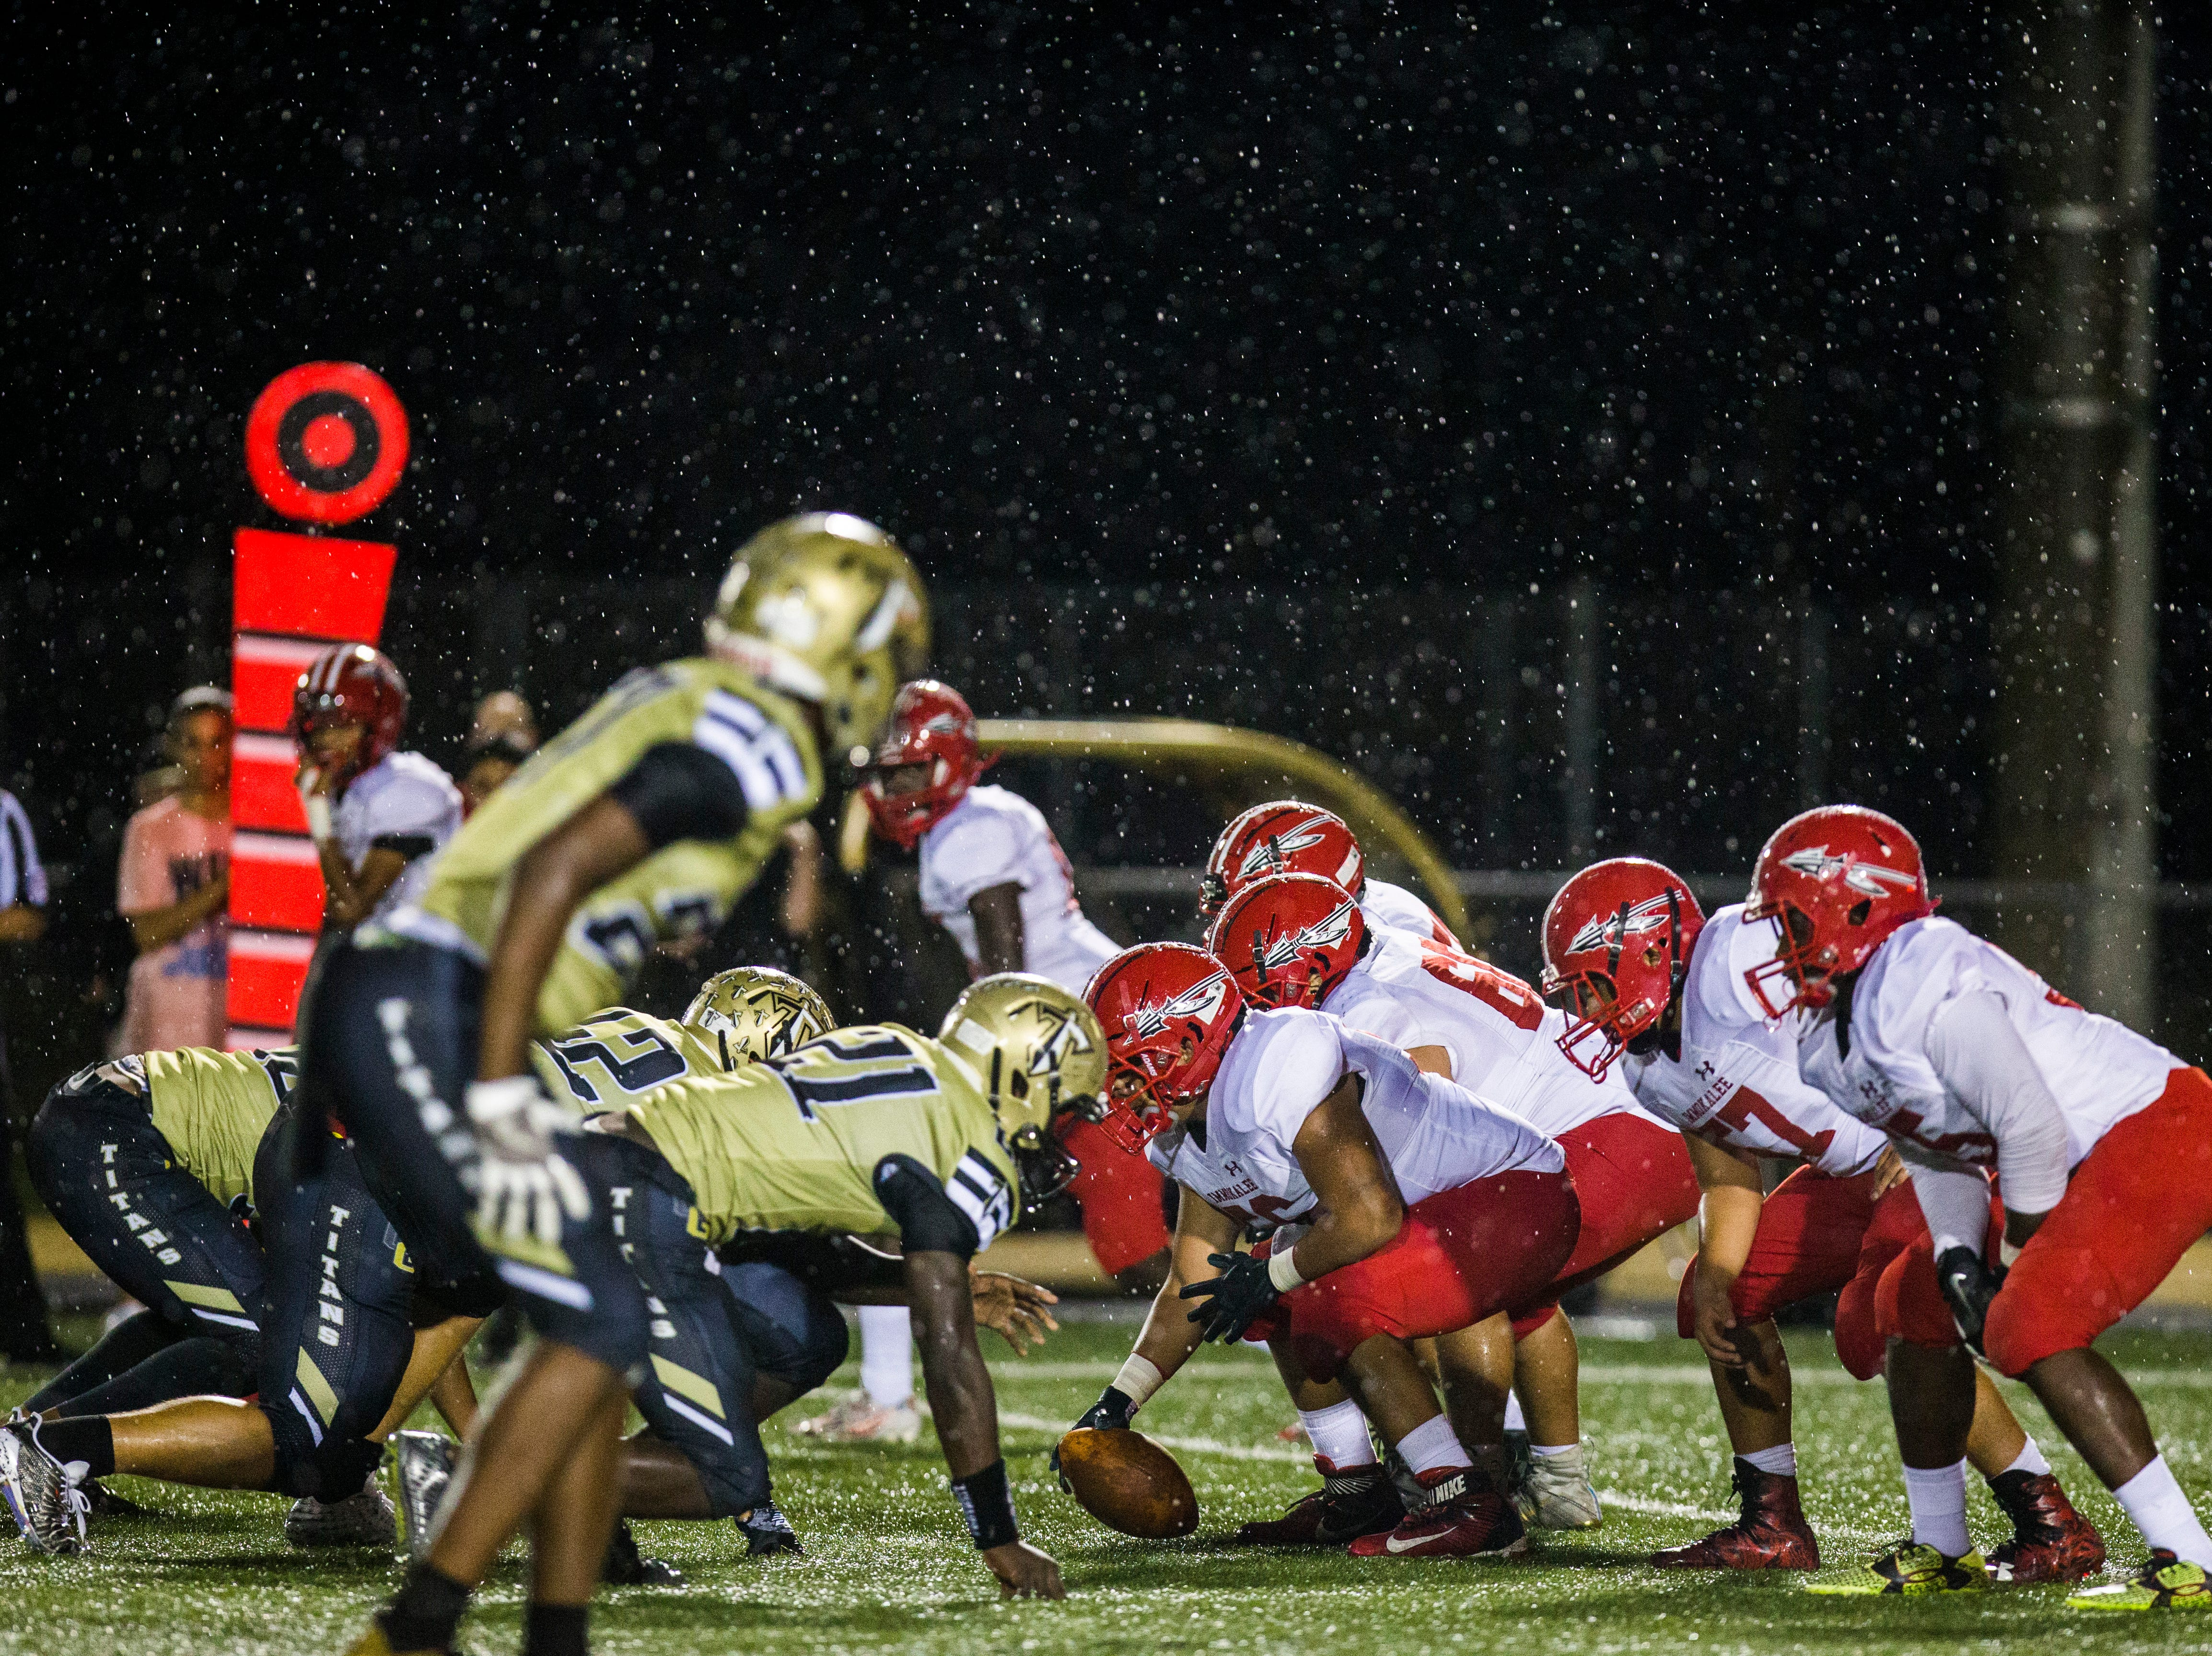 Golden Gate and Immokalee line up before a play during the game at Golden Gate High School on Friday, Aug. 24, 2018.